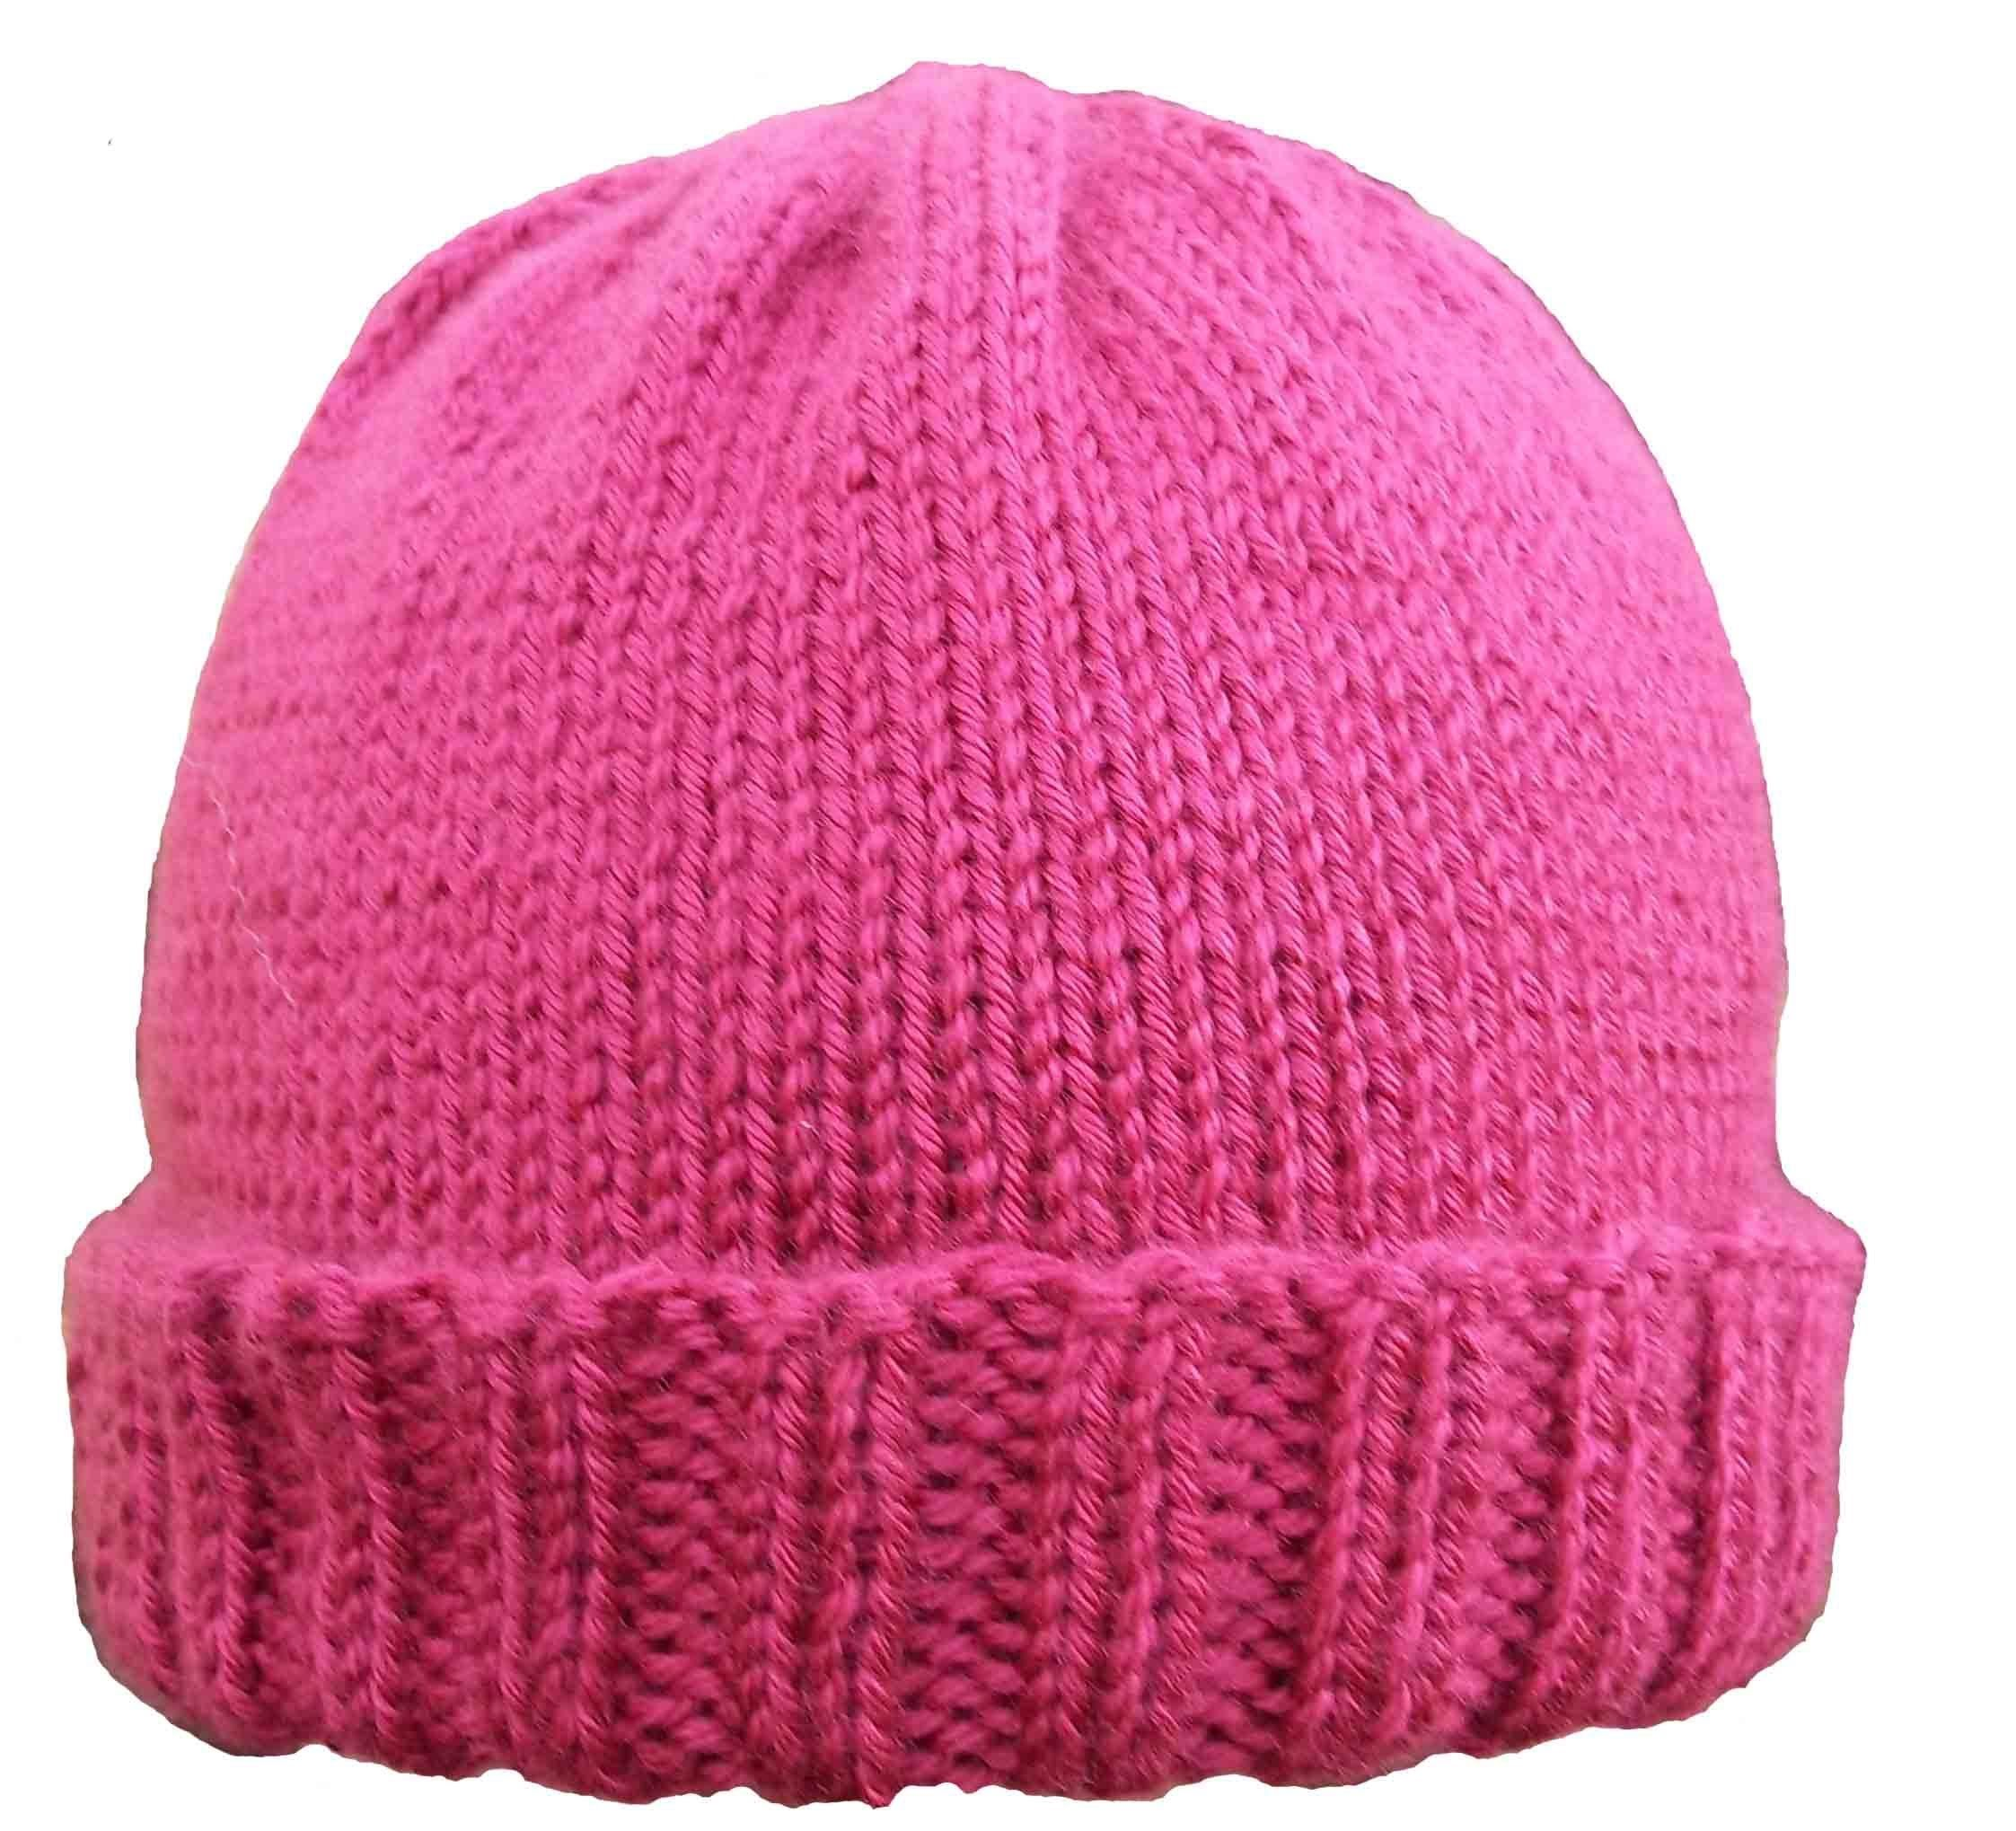 Easy Round Loom Knitting Ideas : How to knit a hat on round loom love that yarn